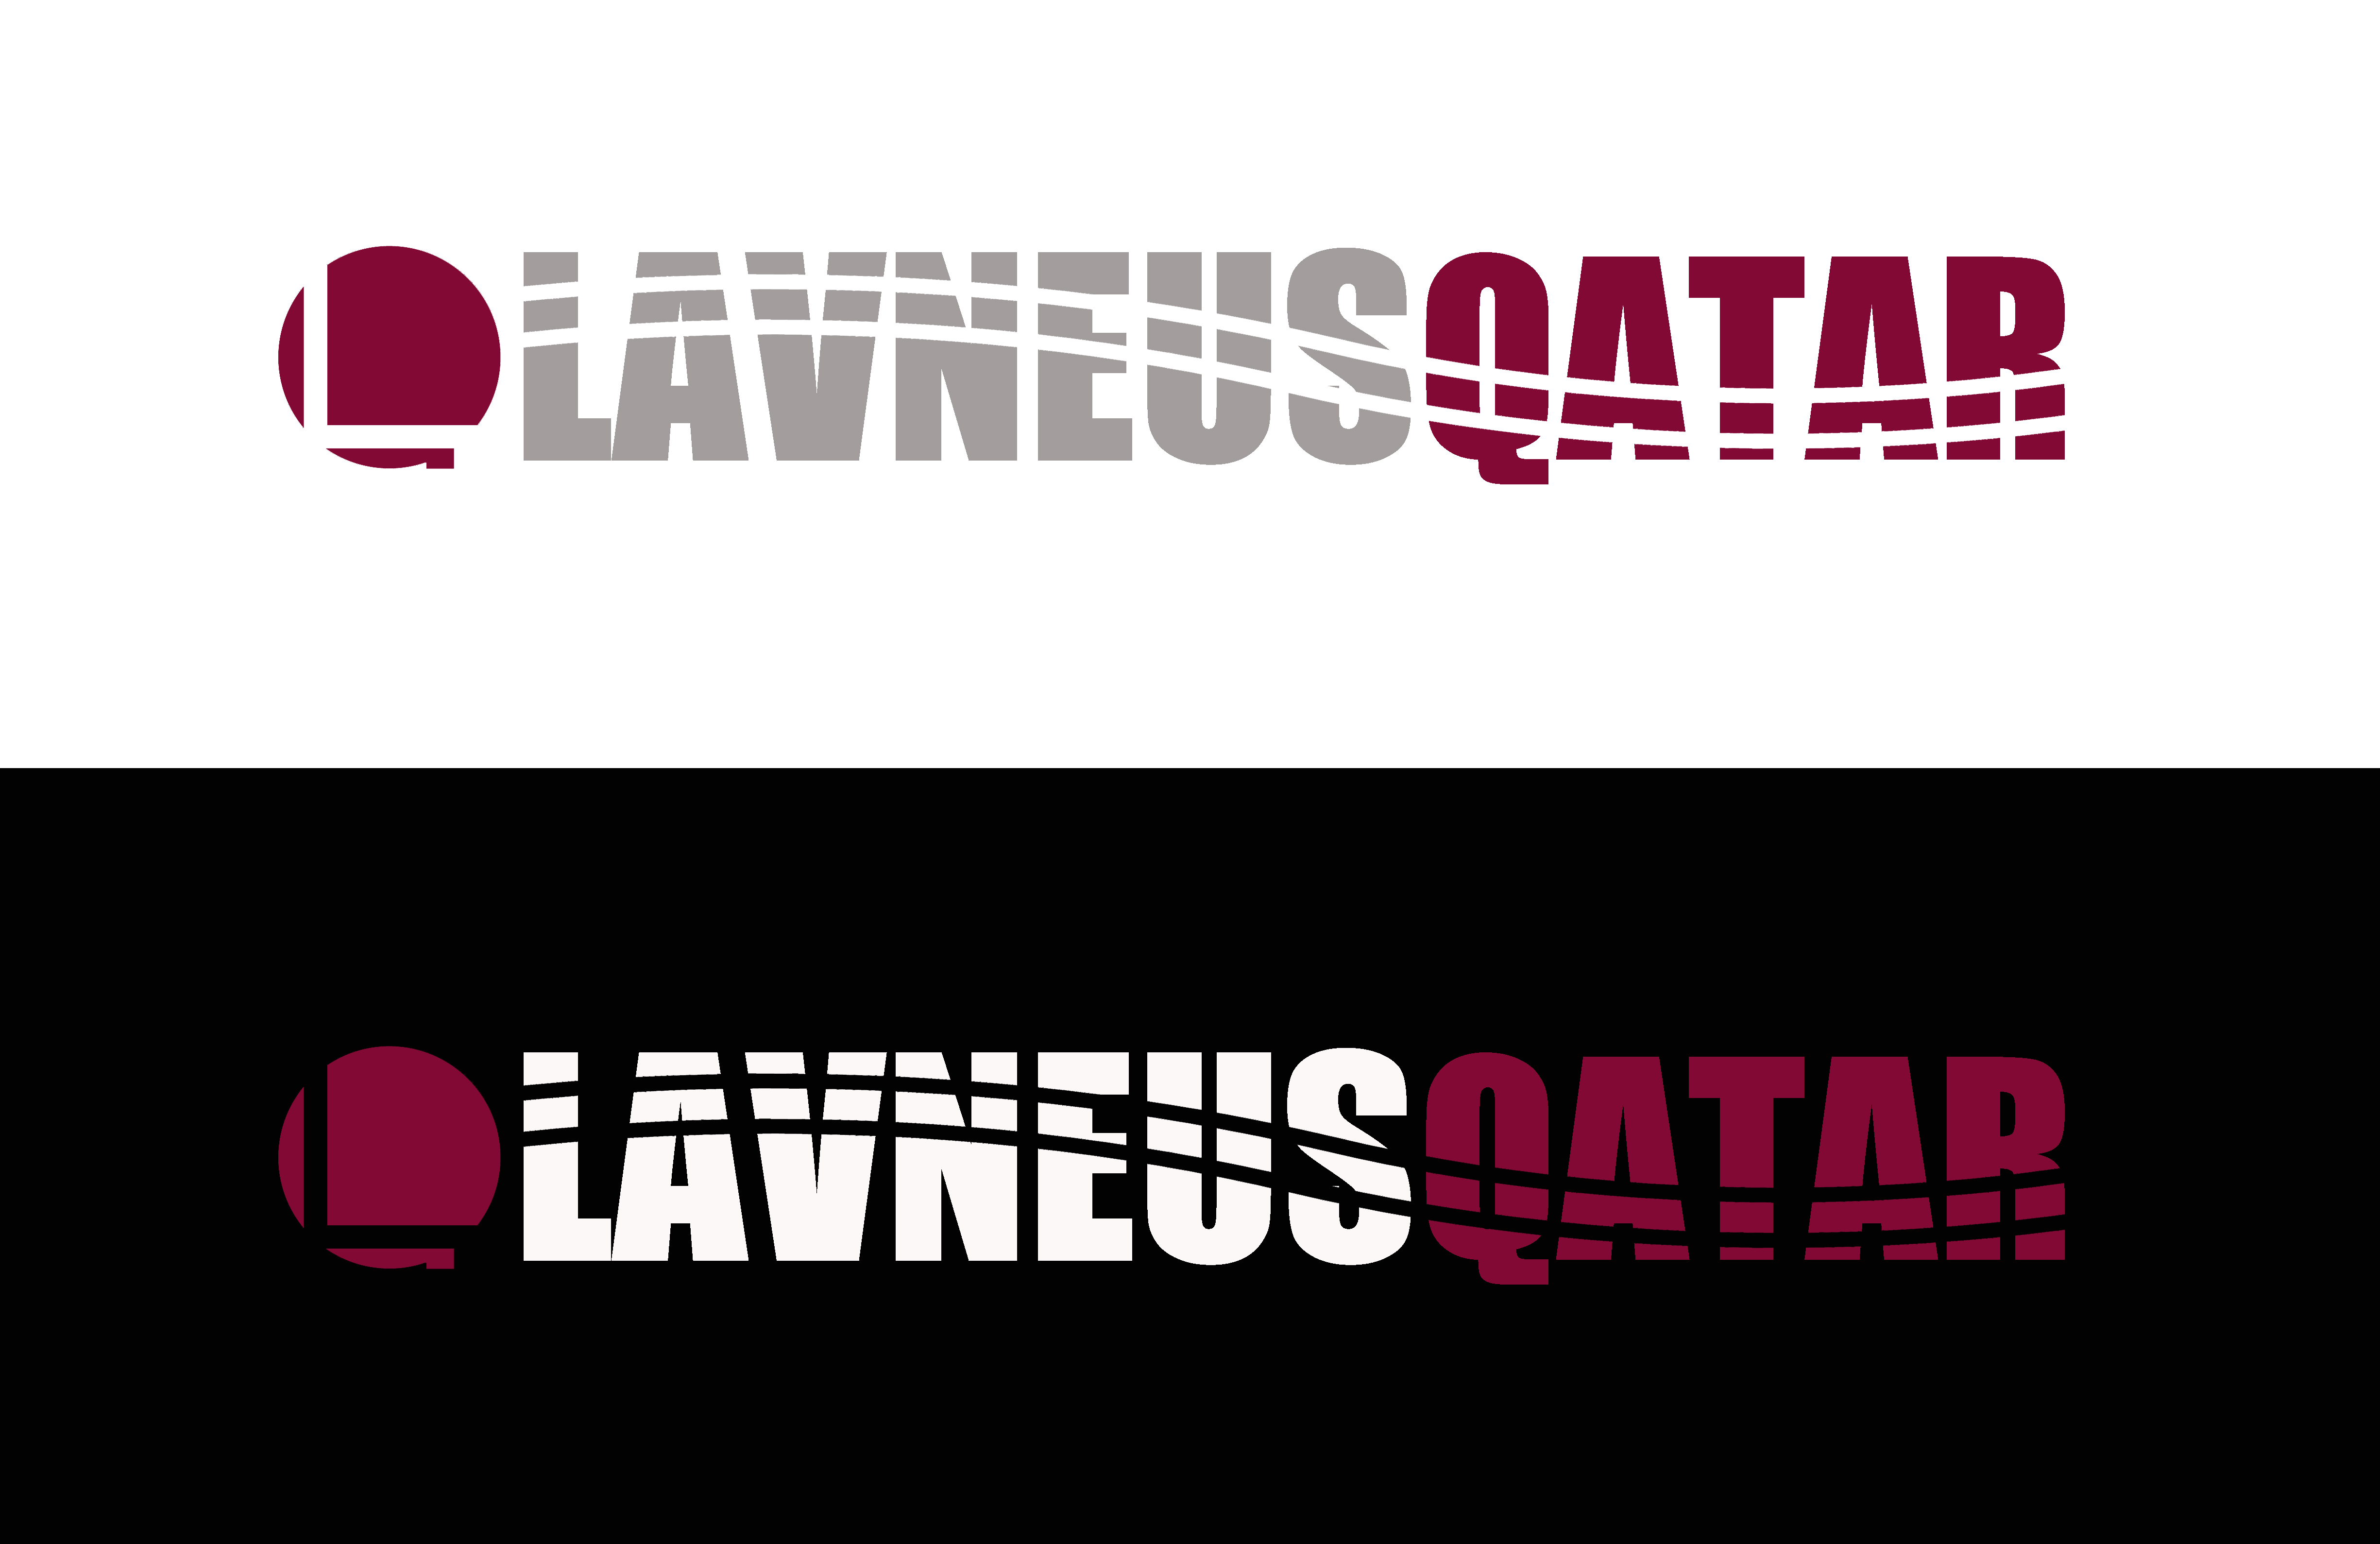 Logo Design by JSDESIGNGROUP - Entry No. 53 in the Logo Design Contest Imaginative Logo Design for lavneus qatar.